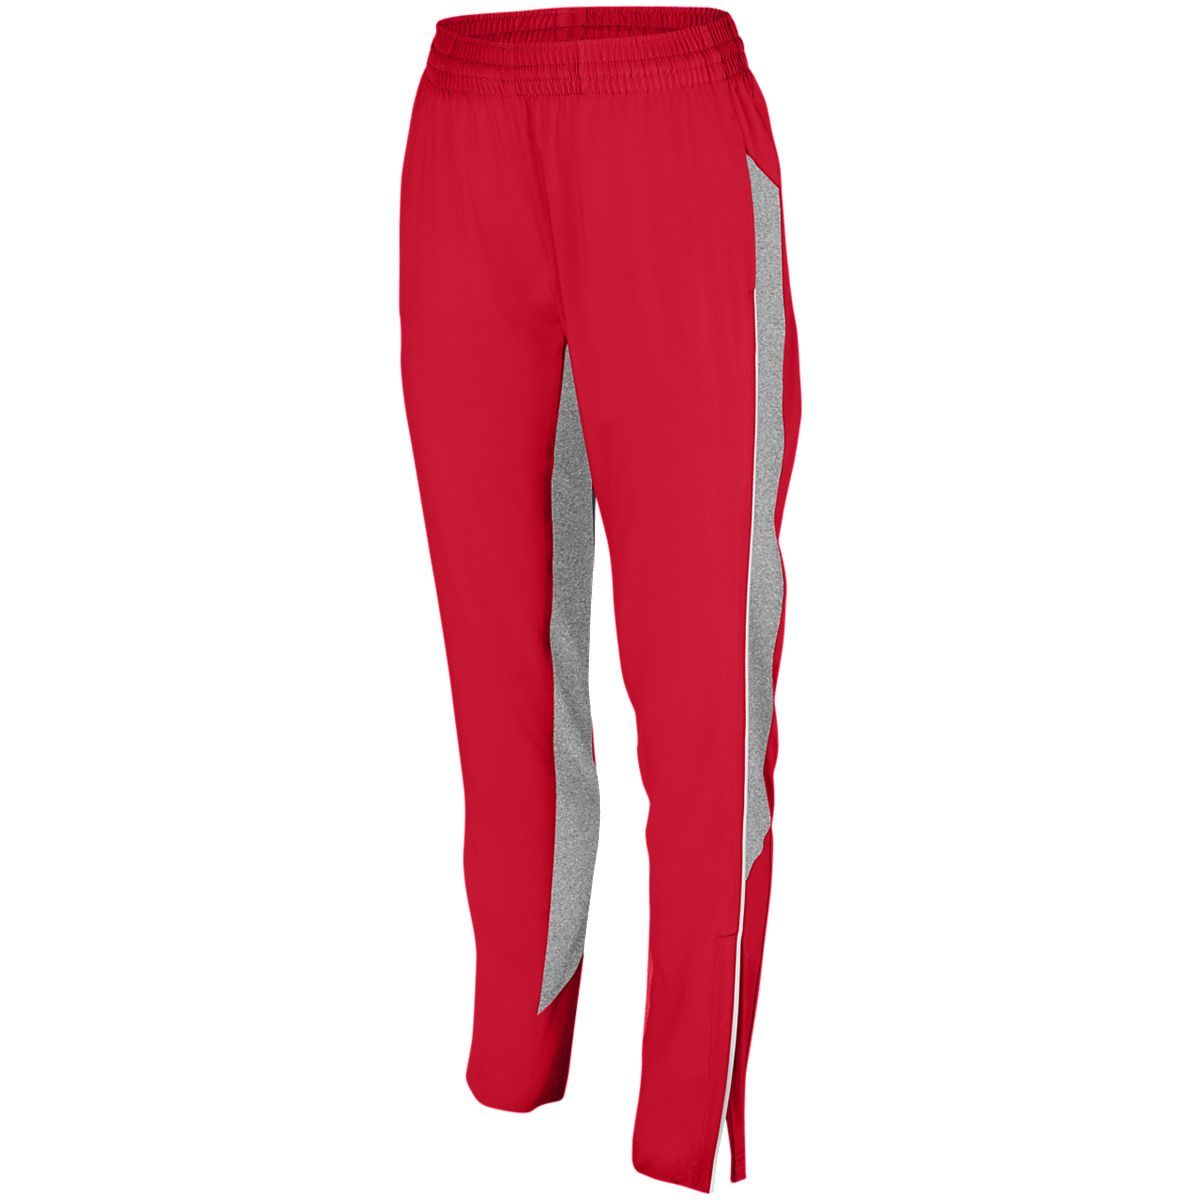 Ladies Preeminent Tapered Pant - RED/GRAPHITE HEATHER